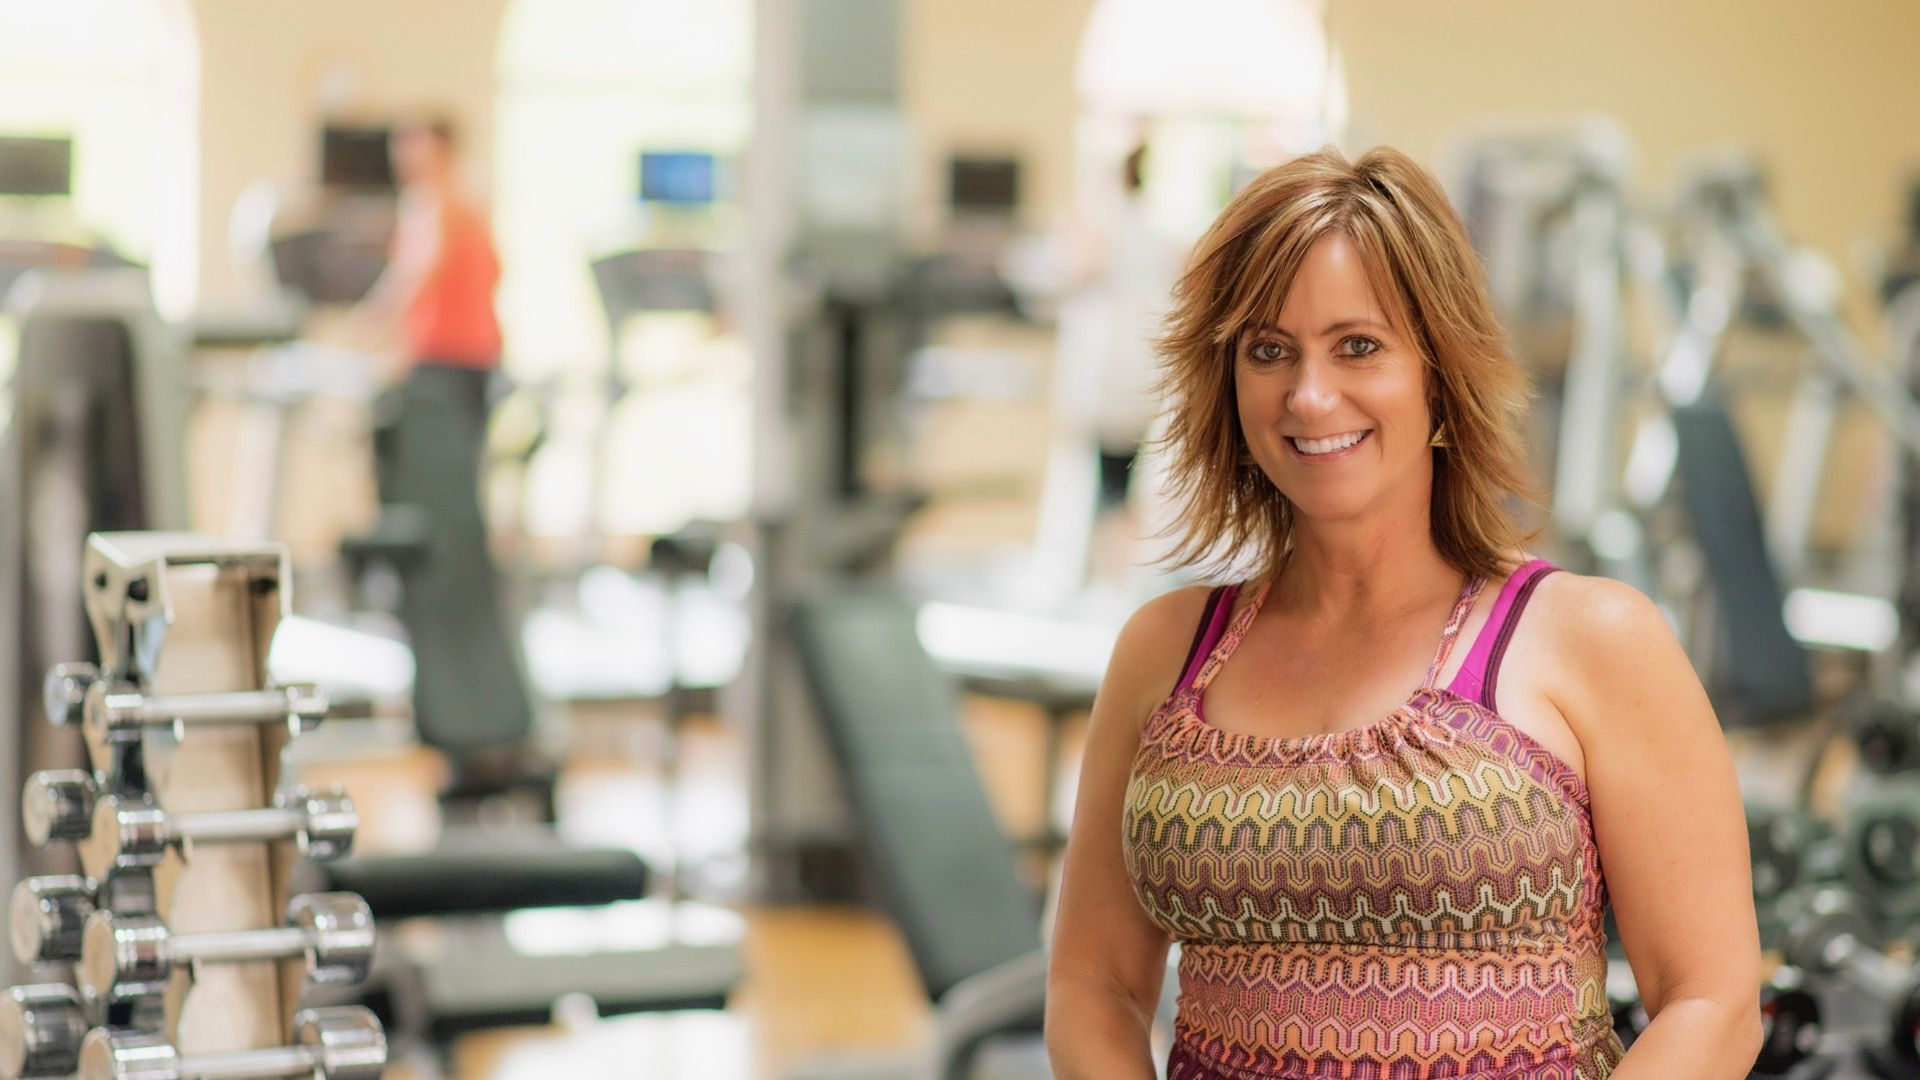 A Life Dedicated To Health And Fitness Kim Watters Celebrates 30 Years Of Fitness At St George Utah S Flirty Girl Fitness Popular Workouts Extreme Workouts